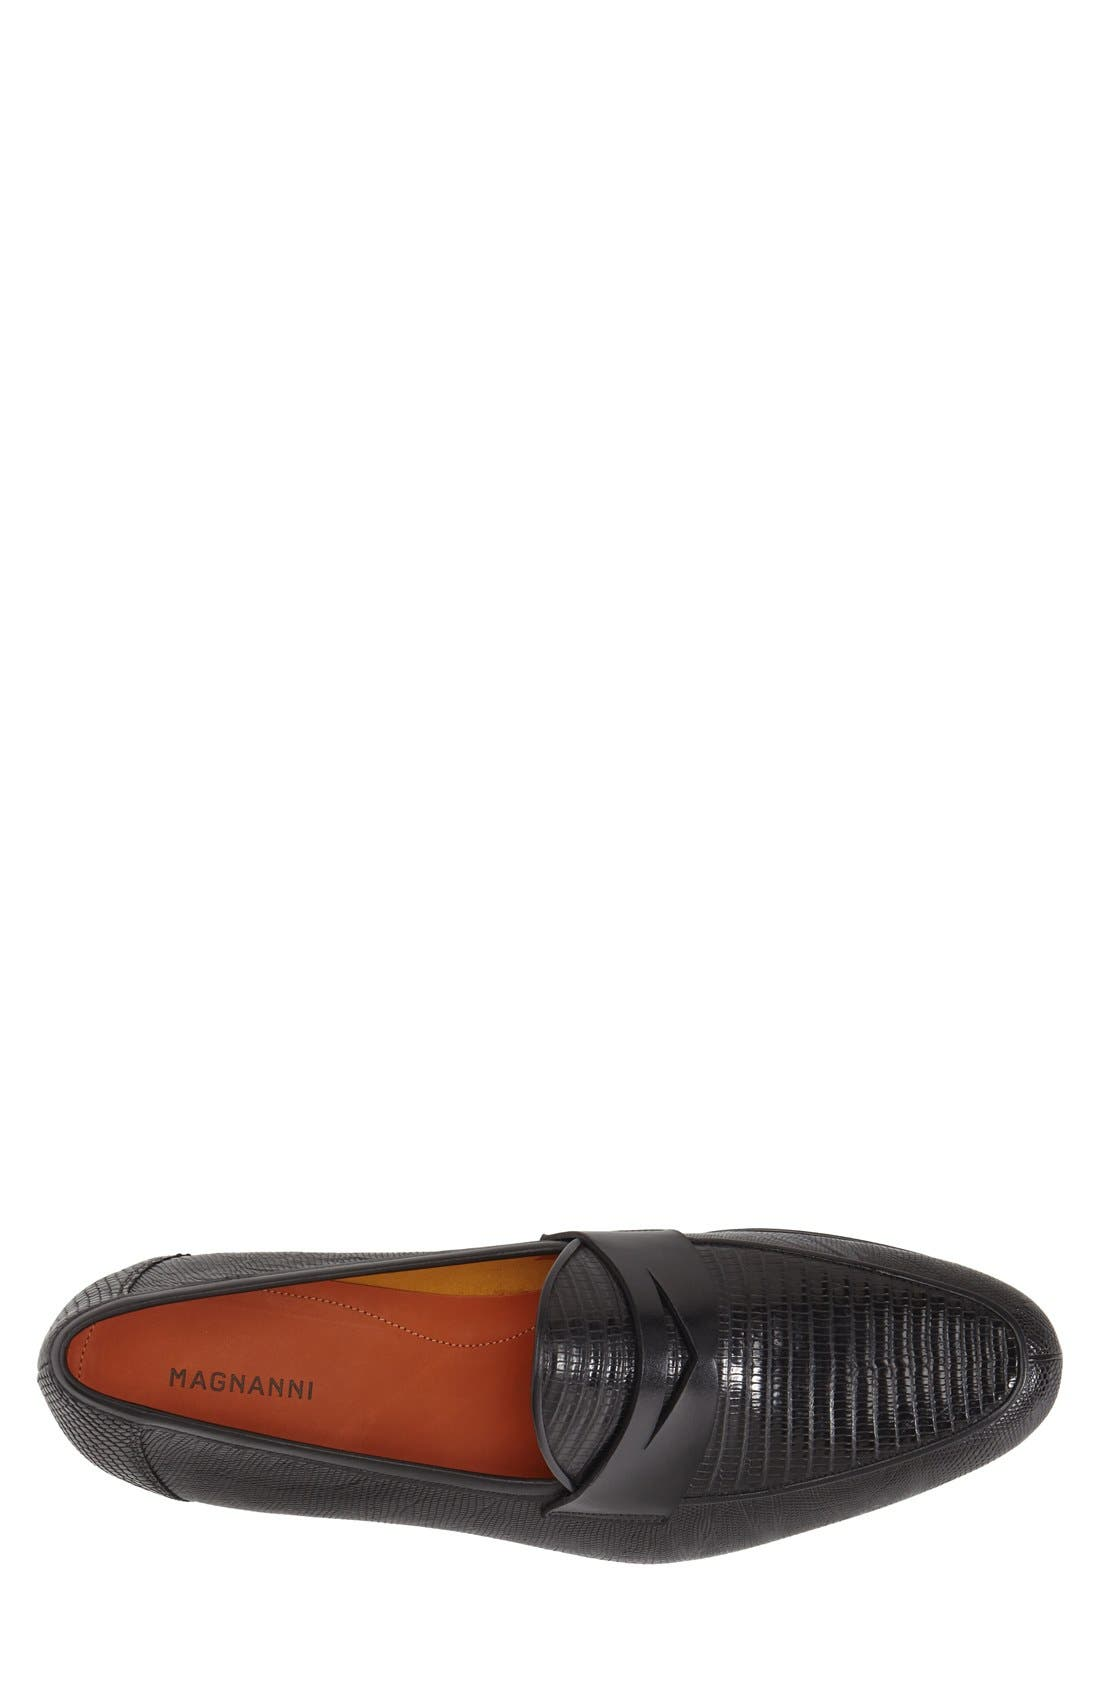 'Camerino' Lizard Penny Loafer,                             Alternate thumbnail 3, color,                             001